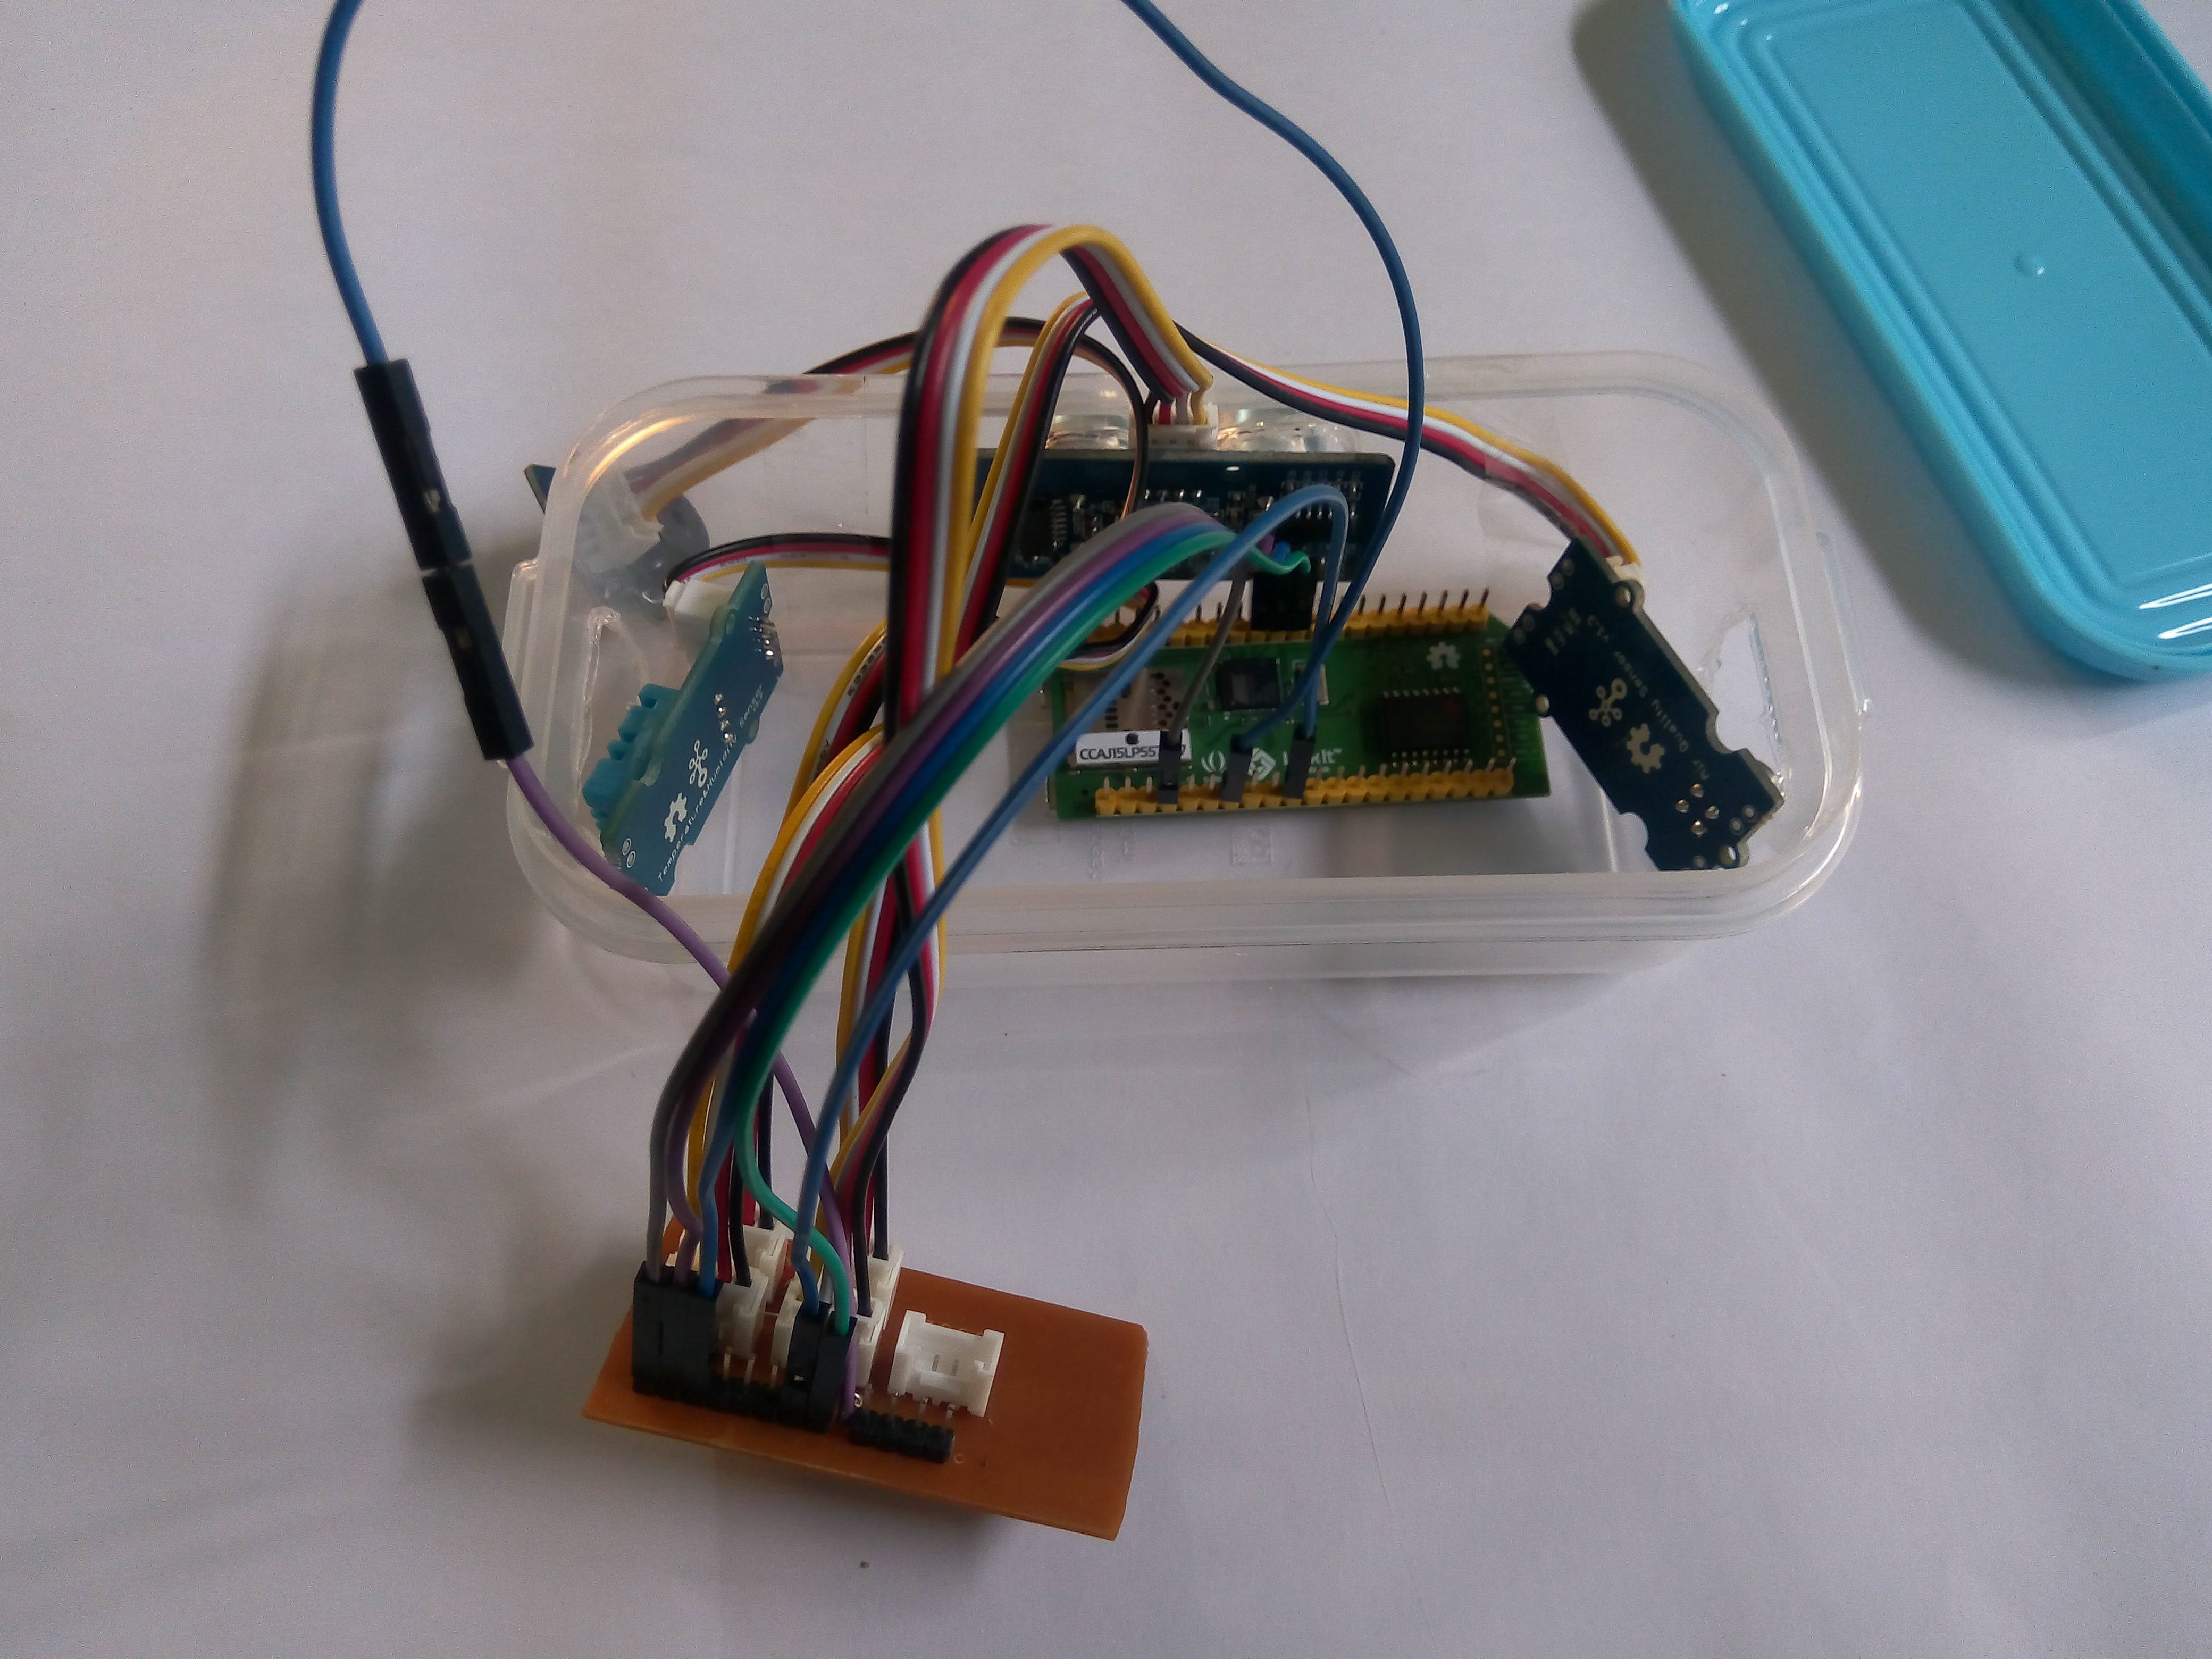 Placing linkit board